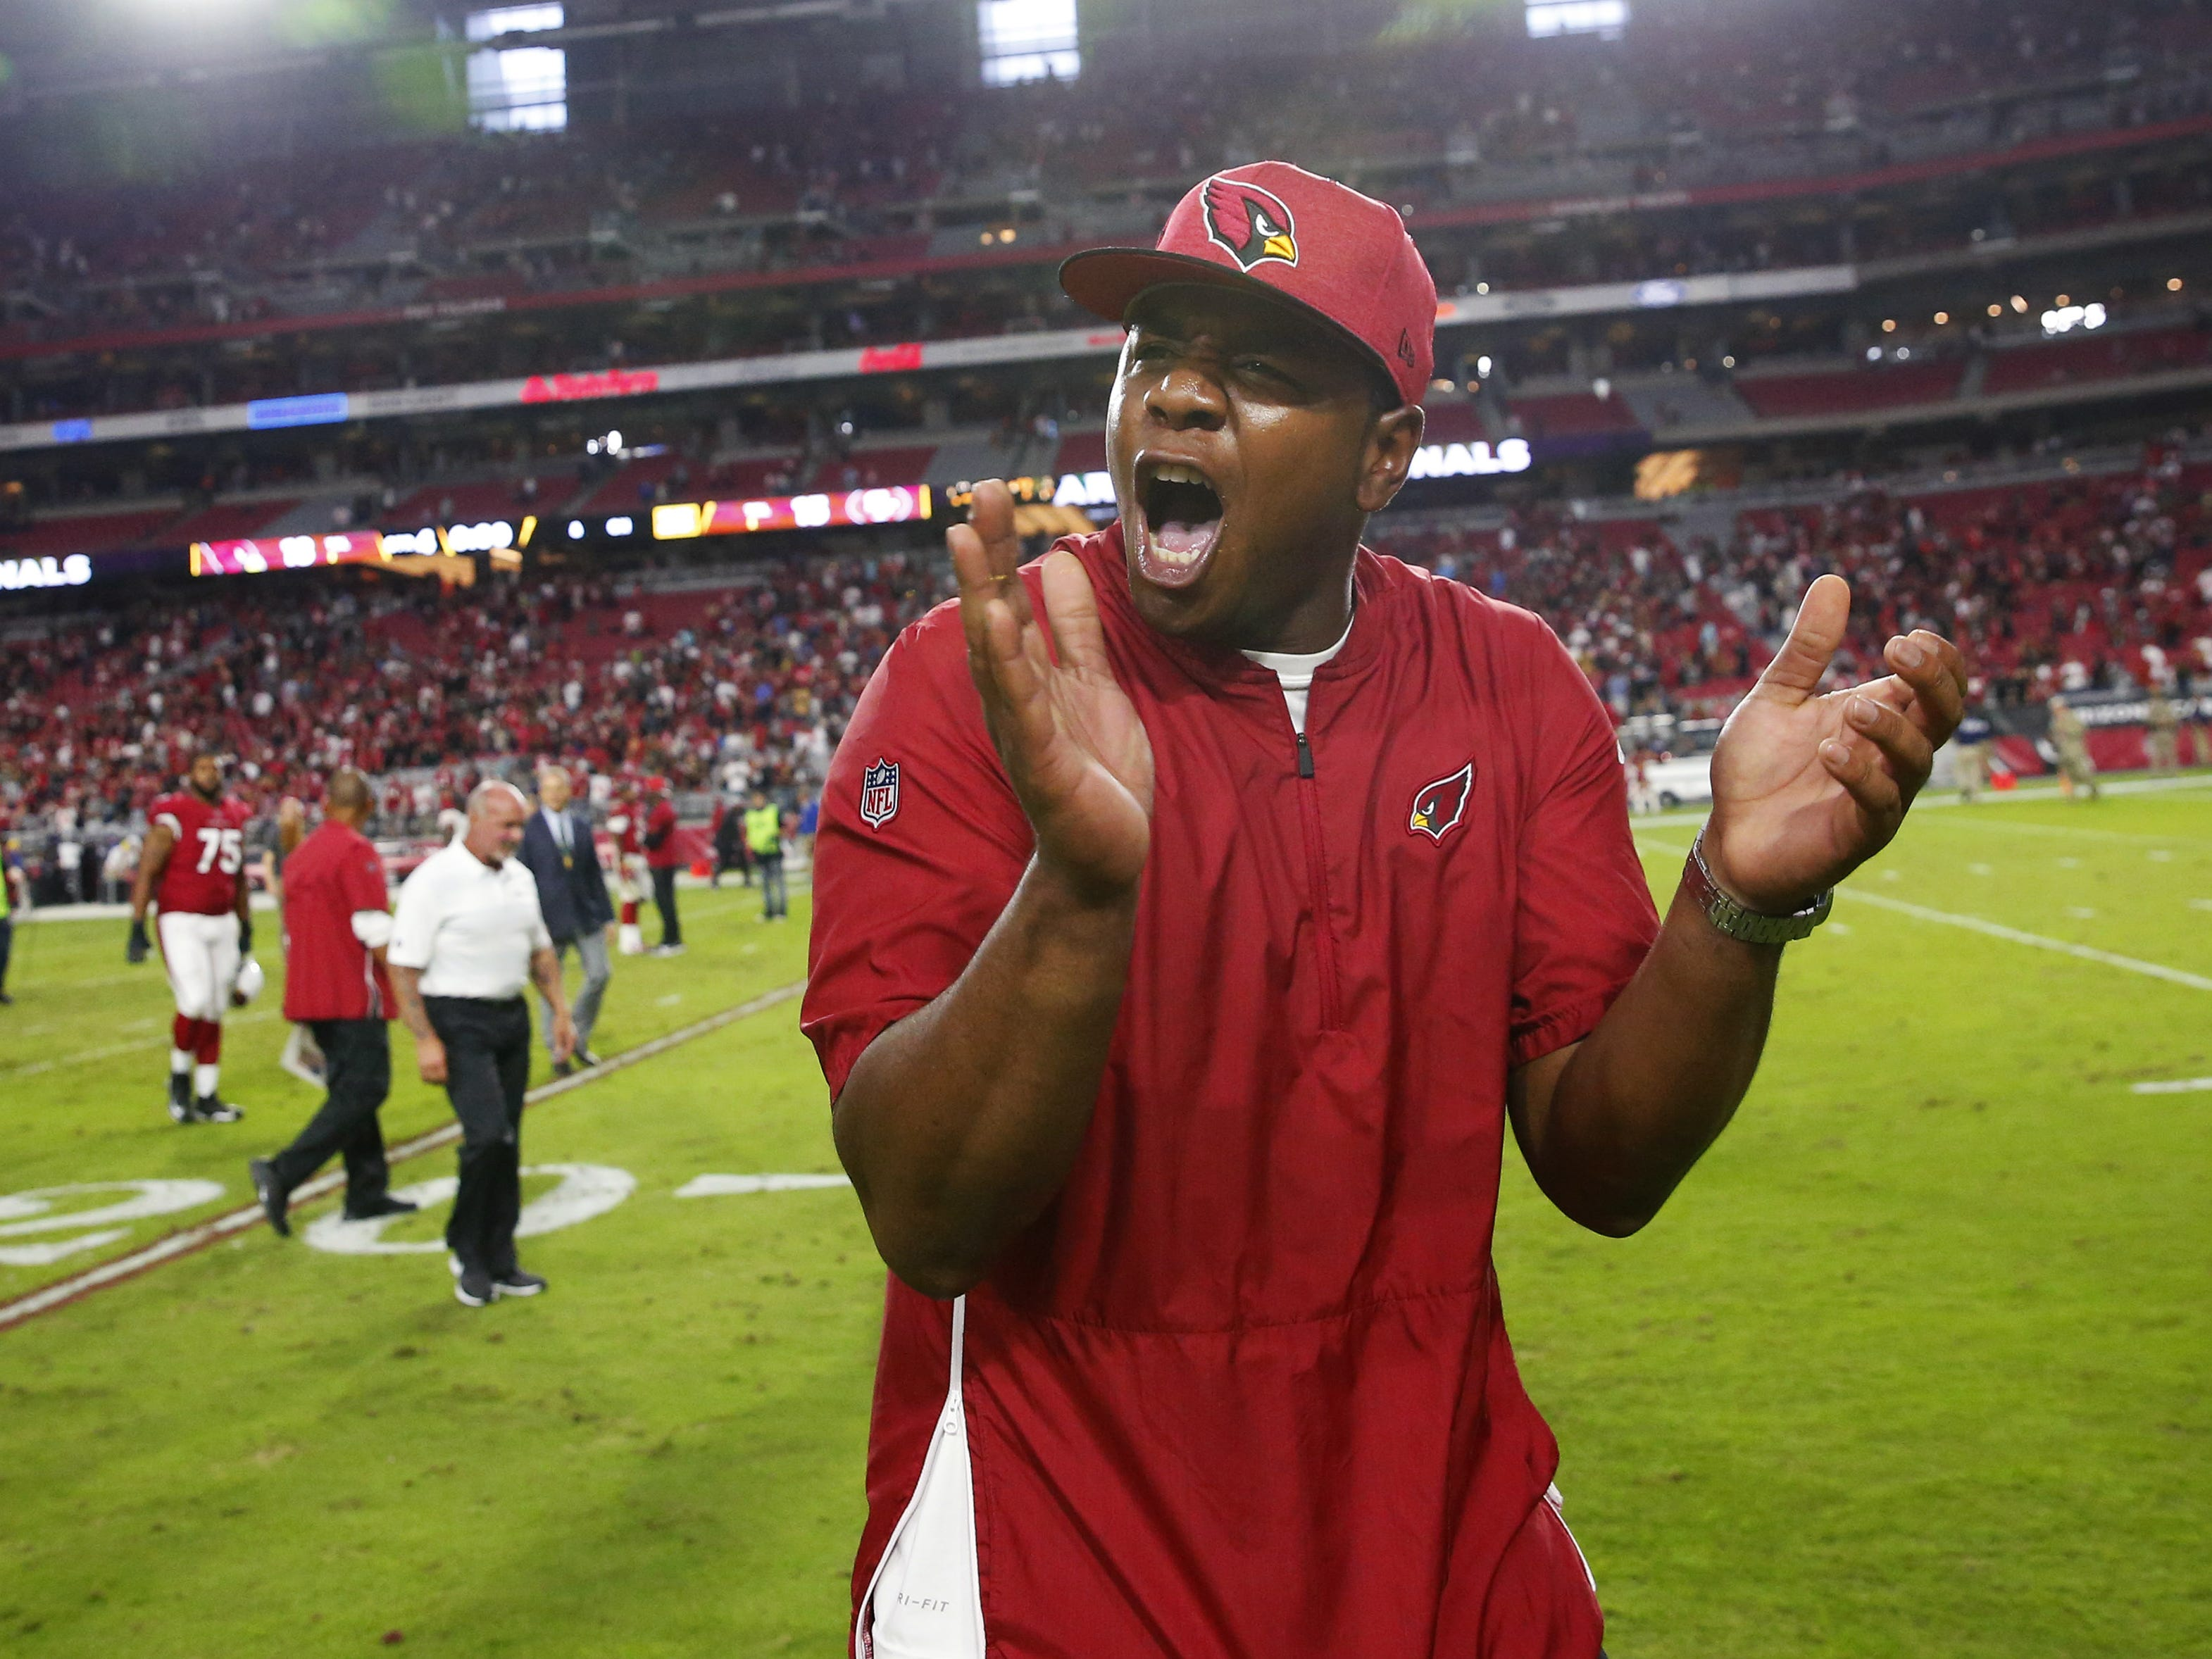 Arizona Cardinals offensive coordinator Byron Leftwich celebrates after an 18-15 come-from-behind win against the San Francisco 49ers on Oct. 28 at State Farm Stadium.